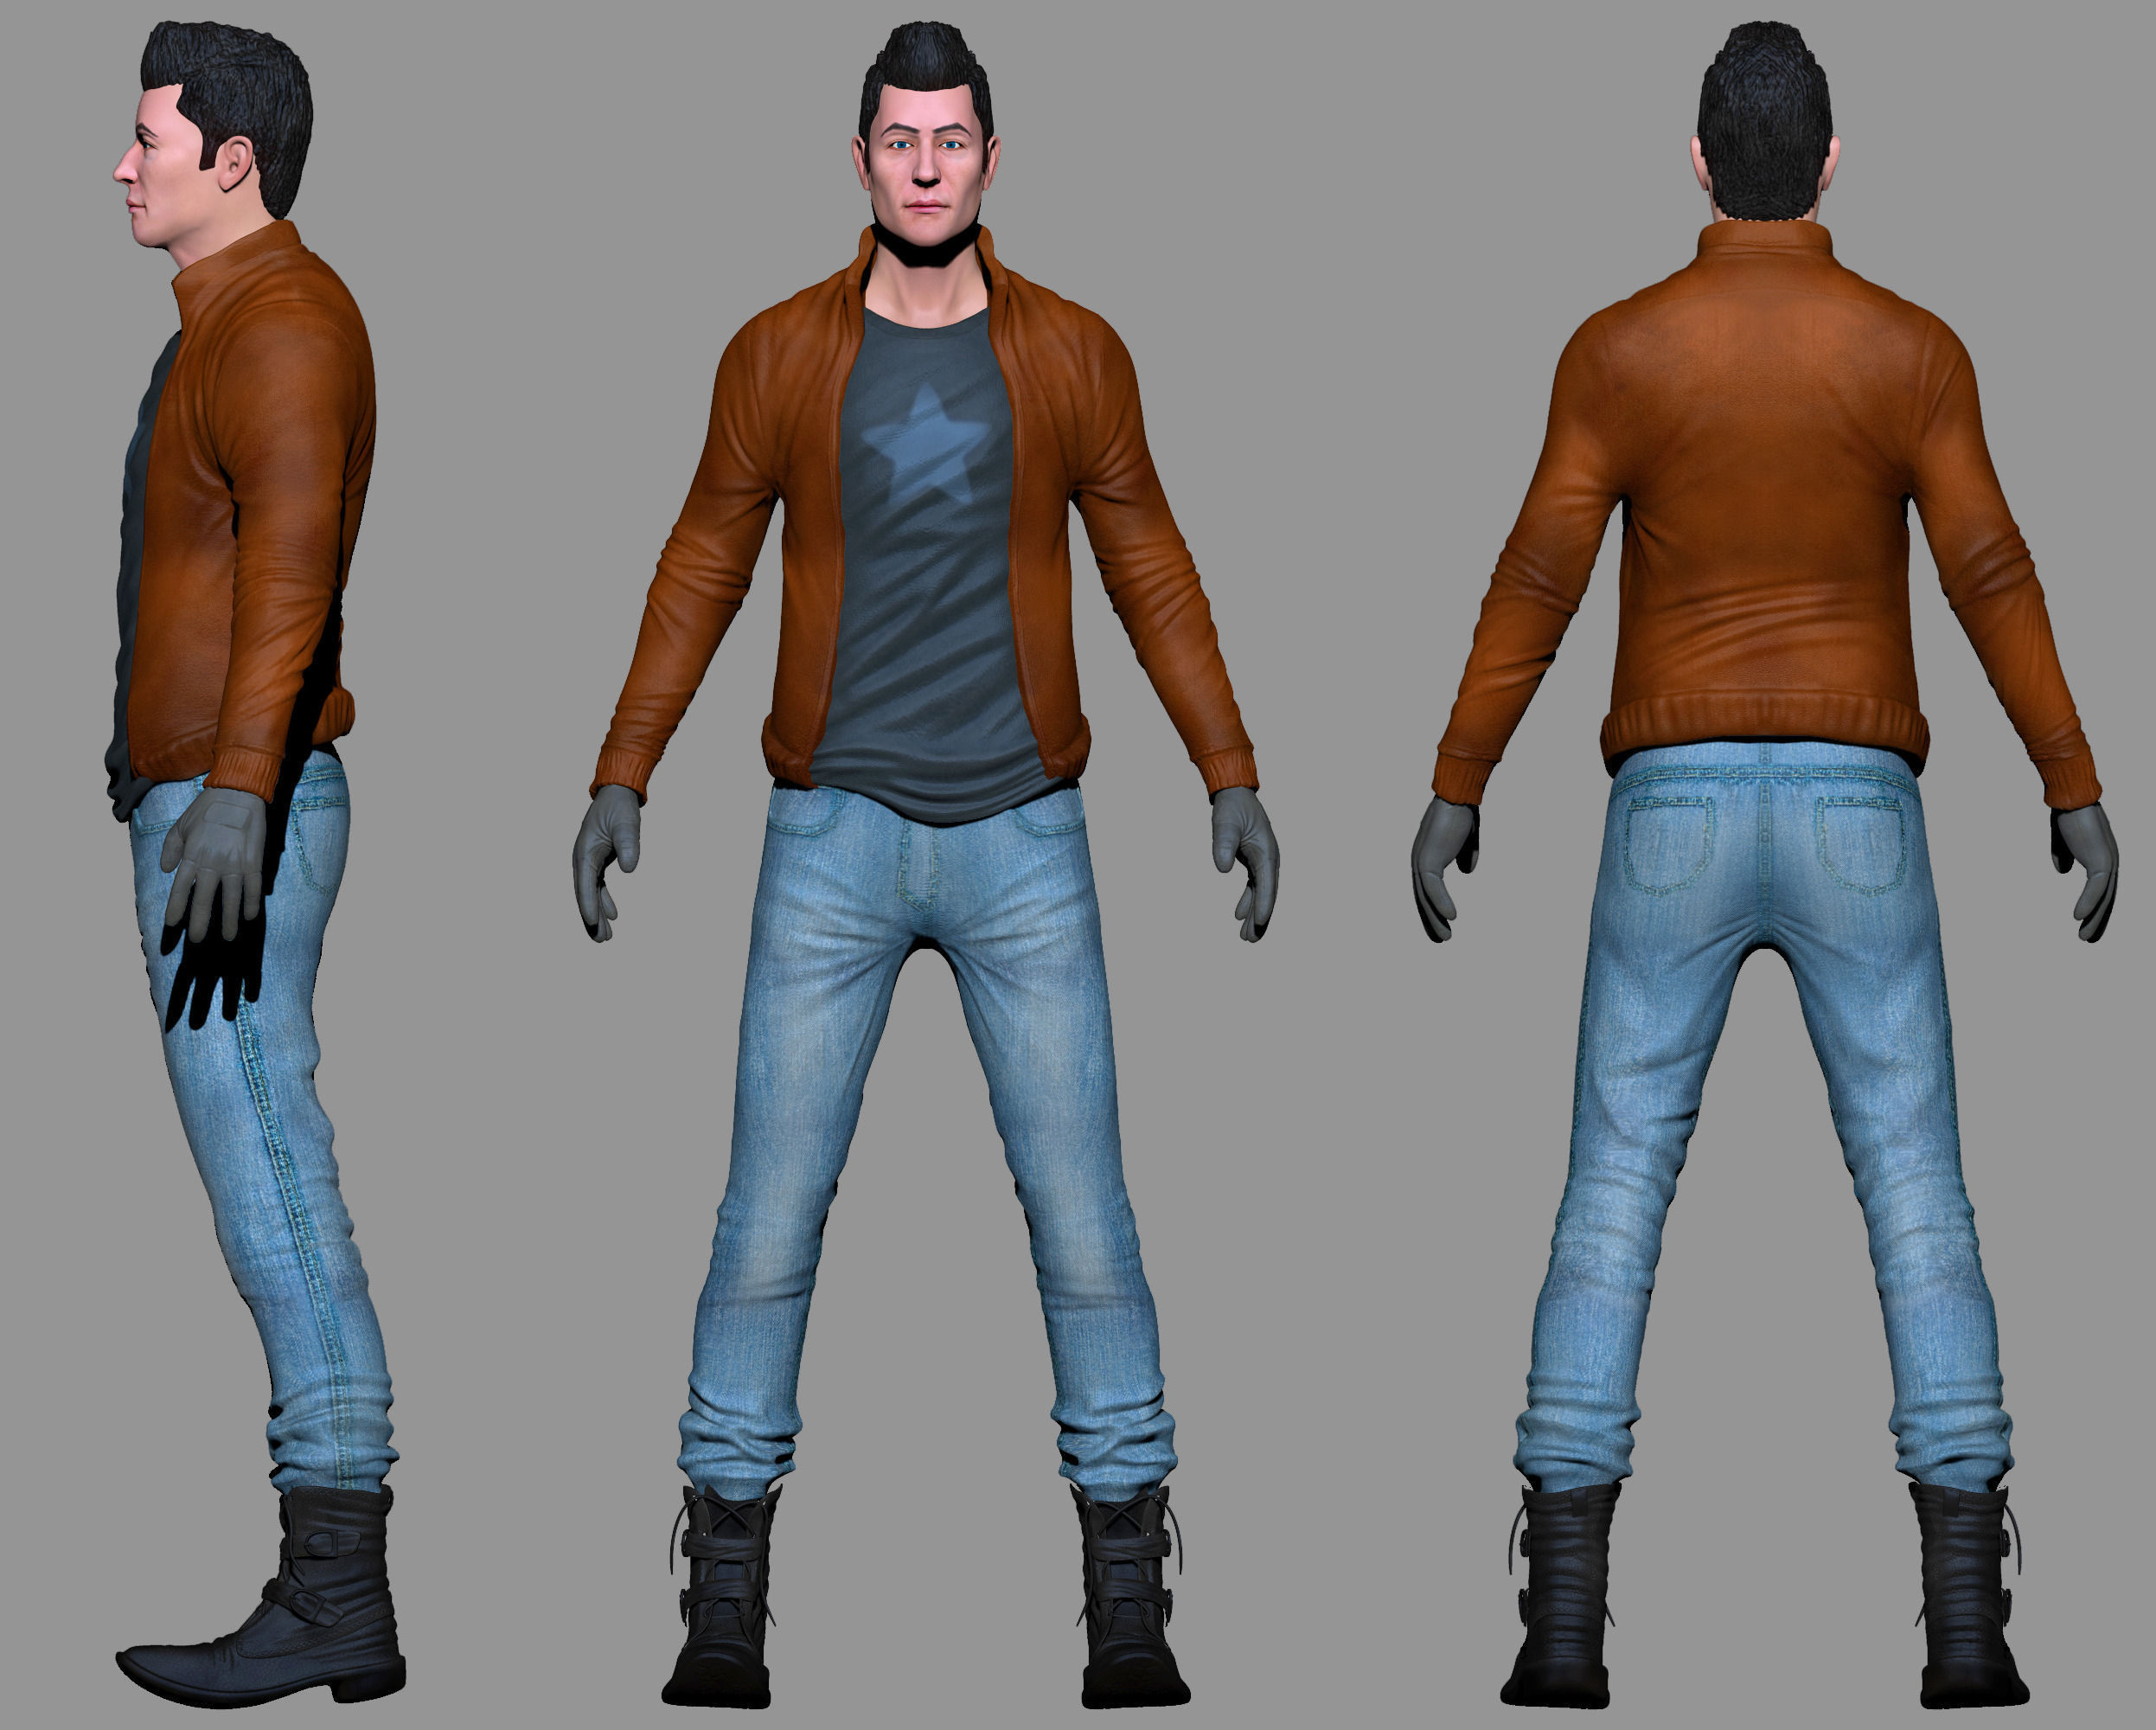 Free 3d Models Character Low Poly Modeling For Game Free 3d Model Obj